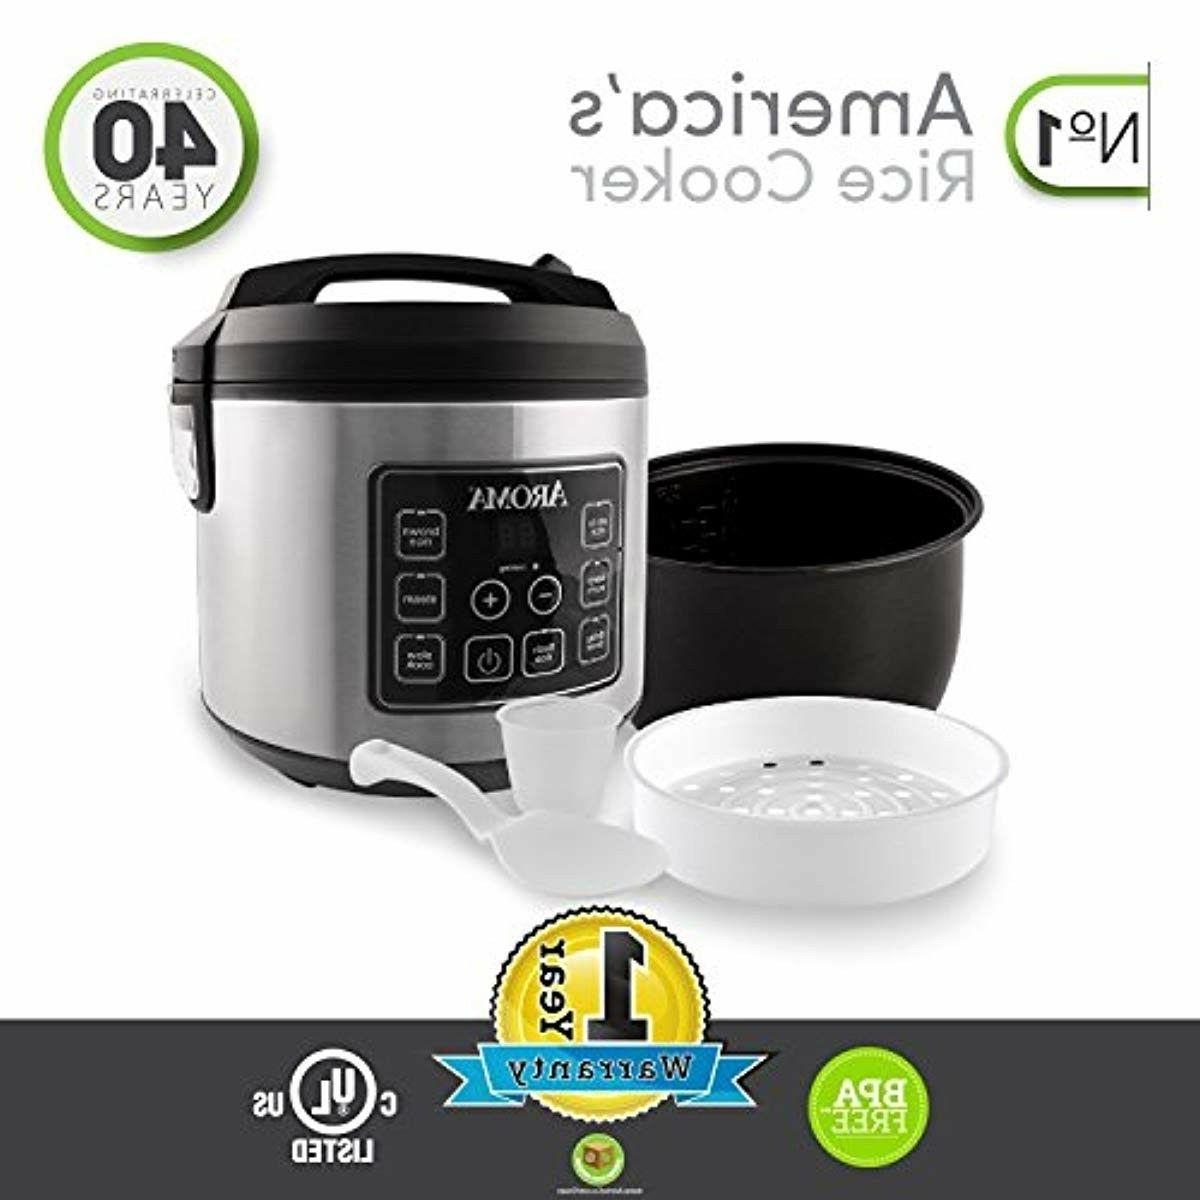 BRAND Aroma Housewares 20 Cooked 10 cup uncooked